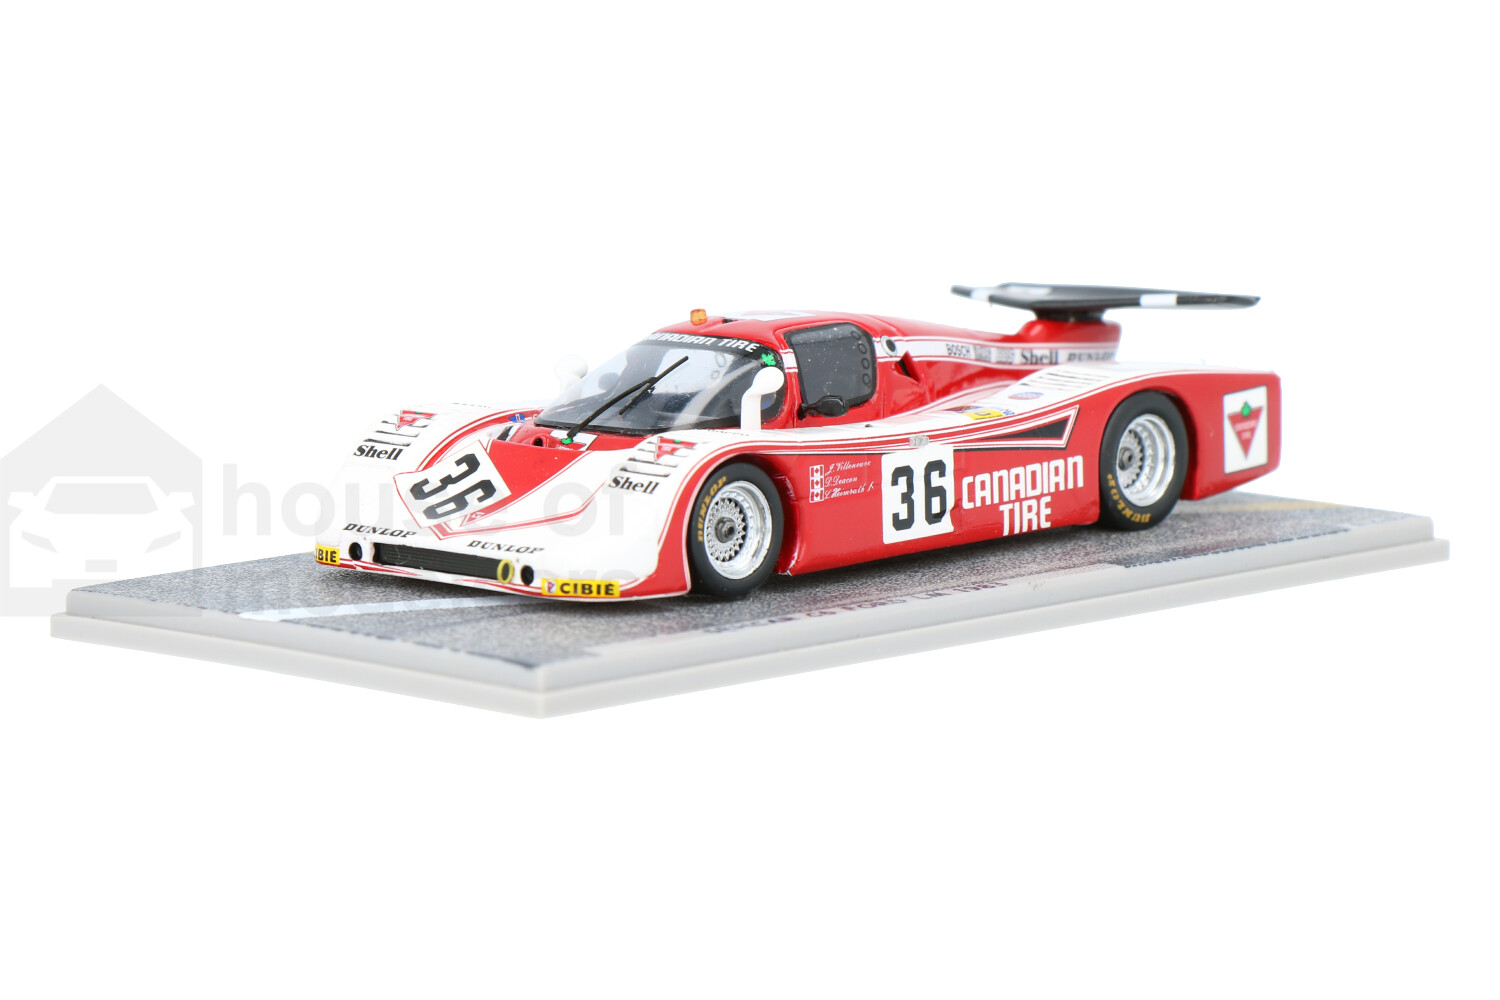 Sehcar SH C6 Ford Cosworth - Modelauto schaal 1:43